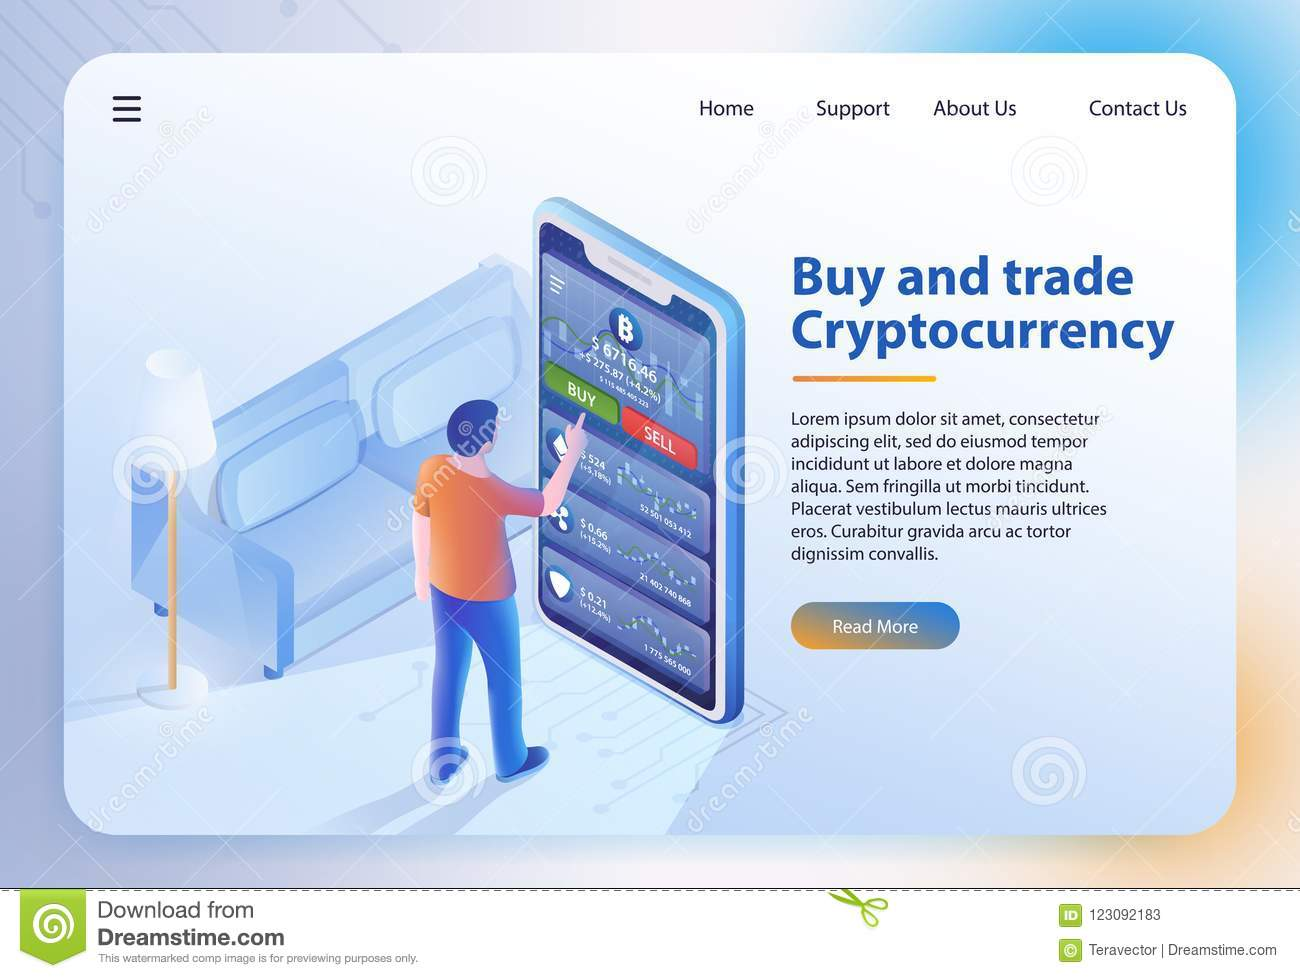 where can i buy or trade cryptocurrency